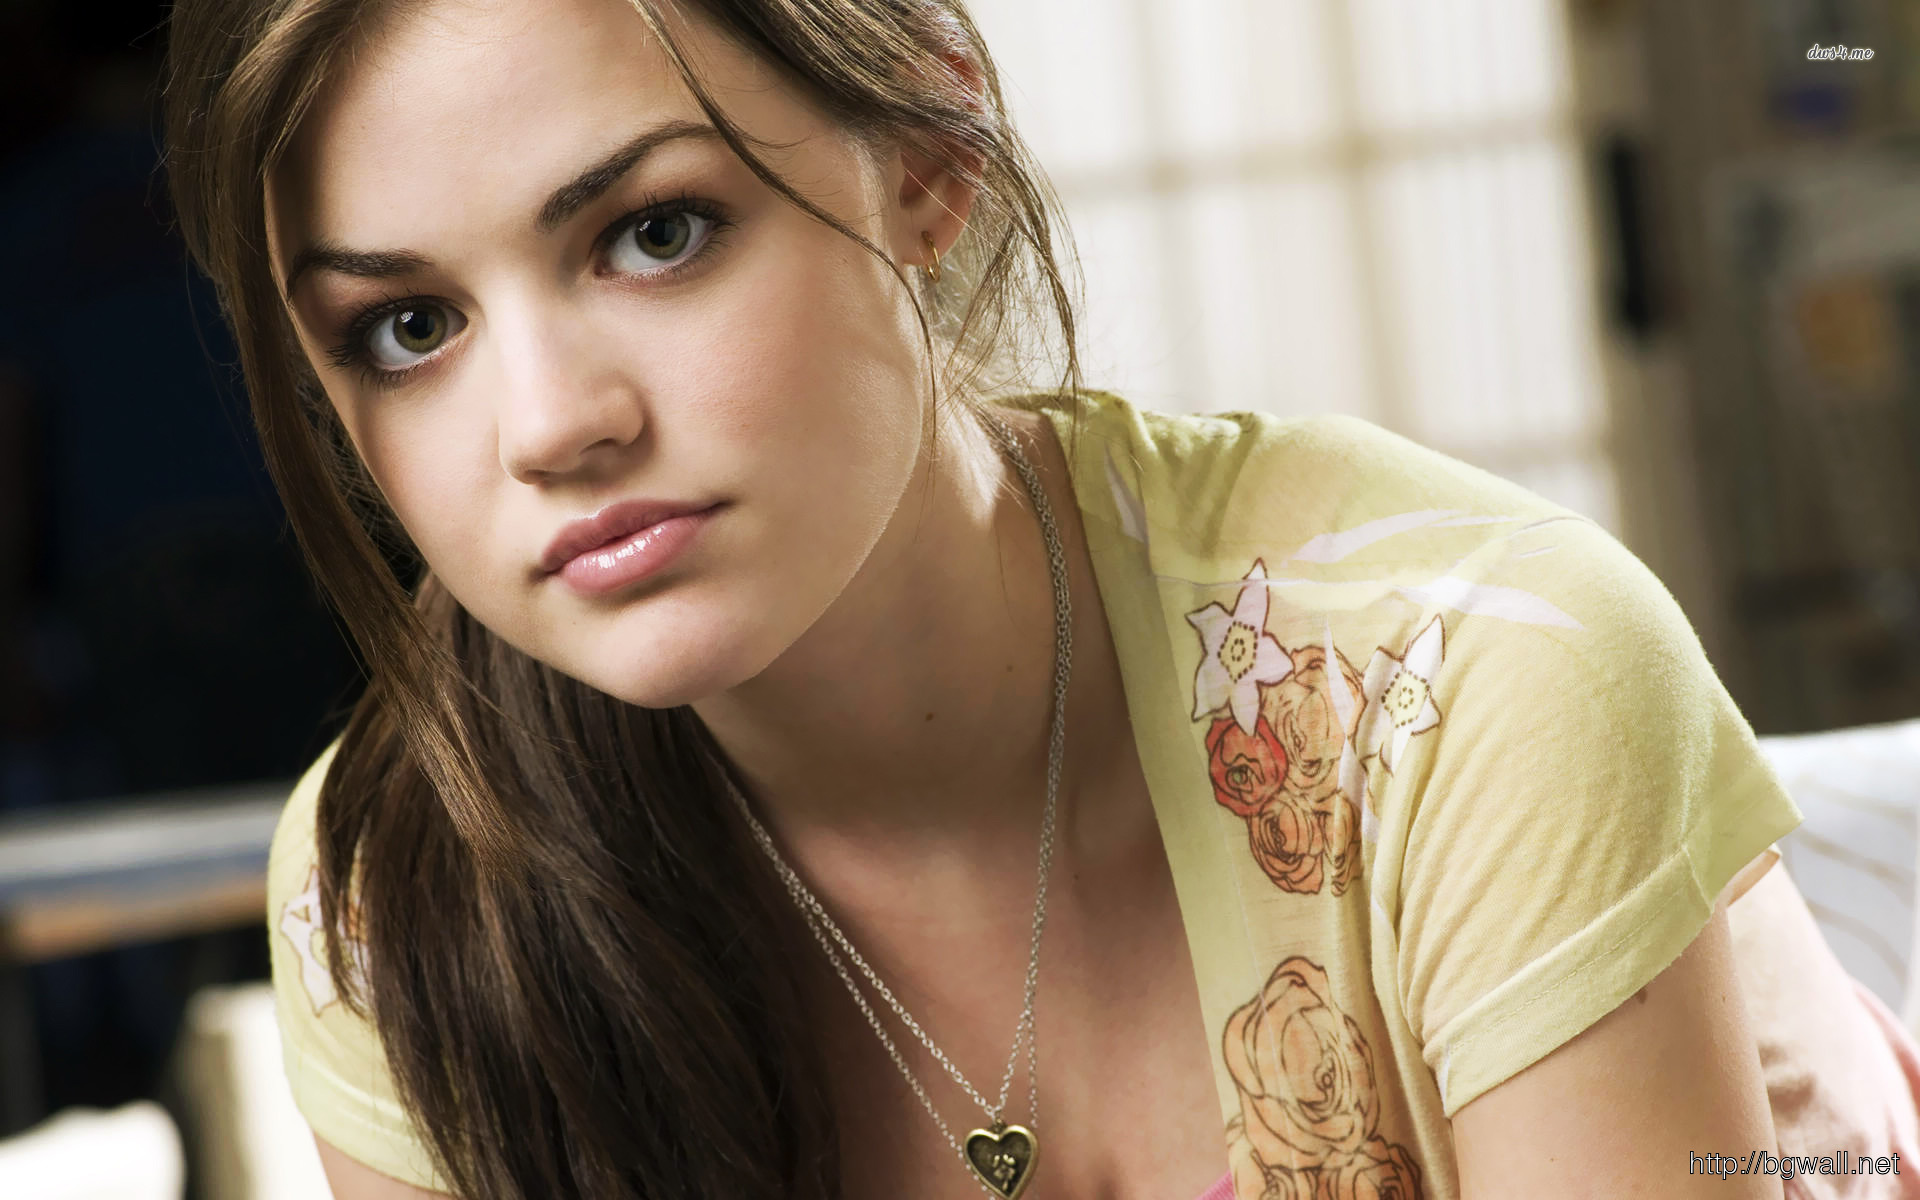 Lucy Hale Wallpapers Hd Free Full Size